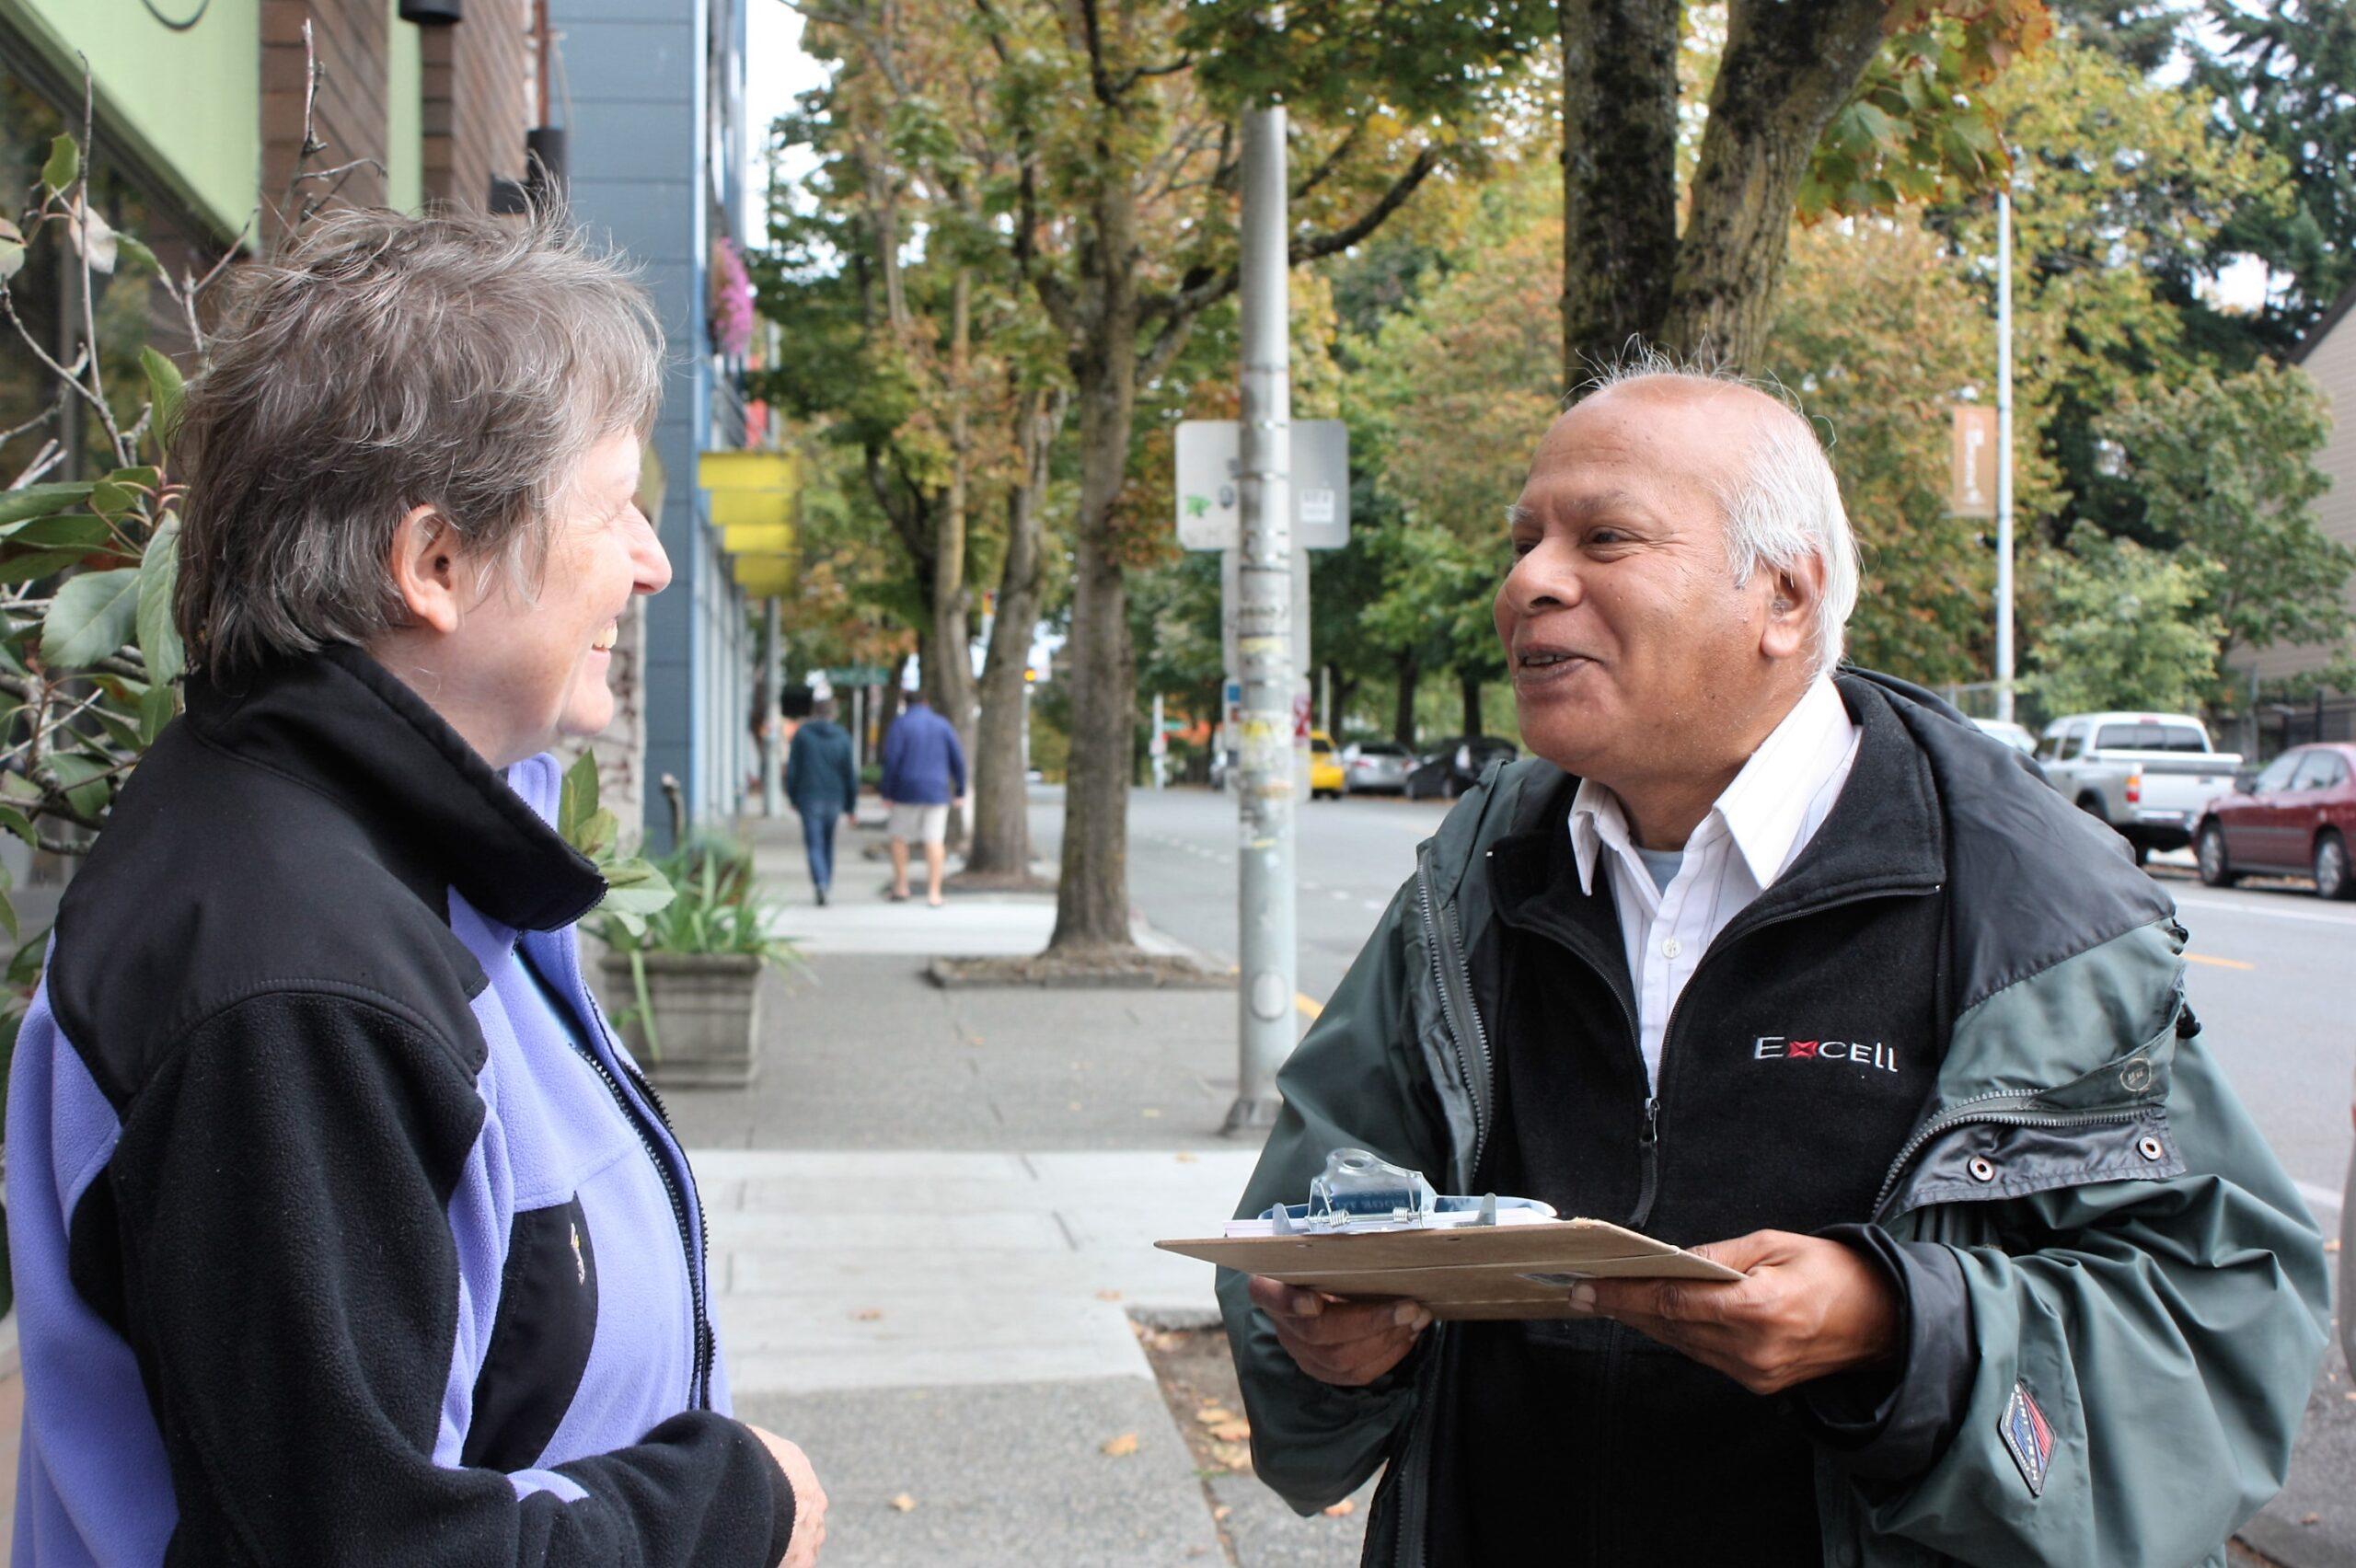 WA CAN canvasser